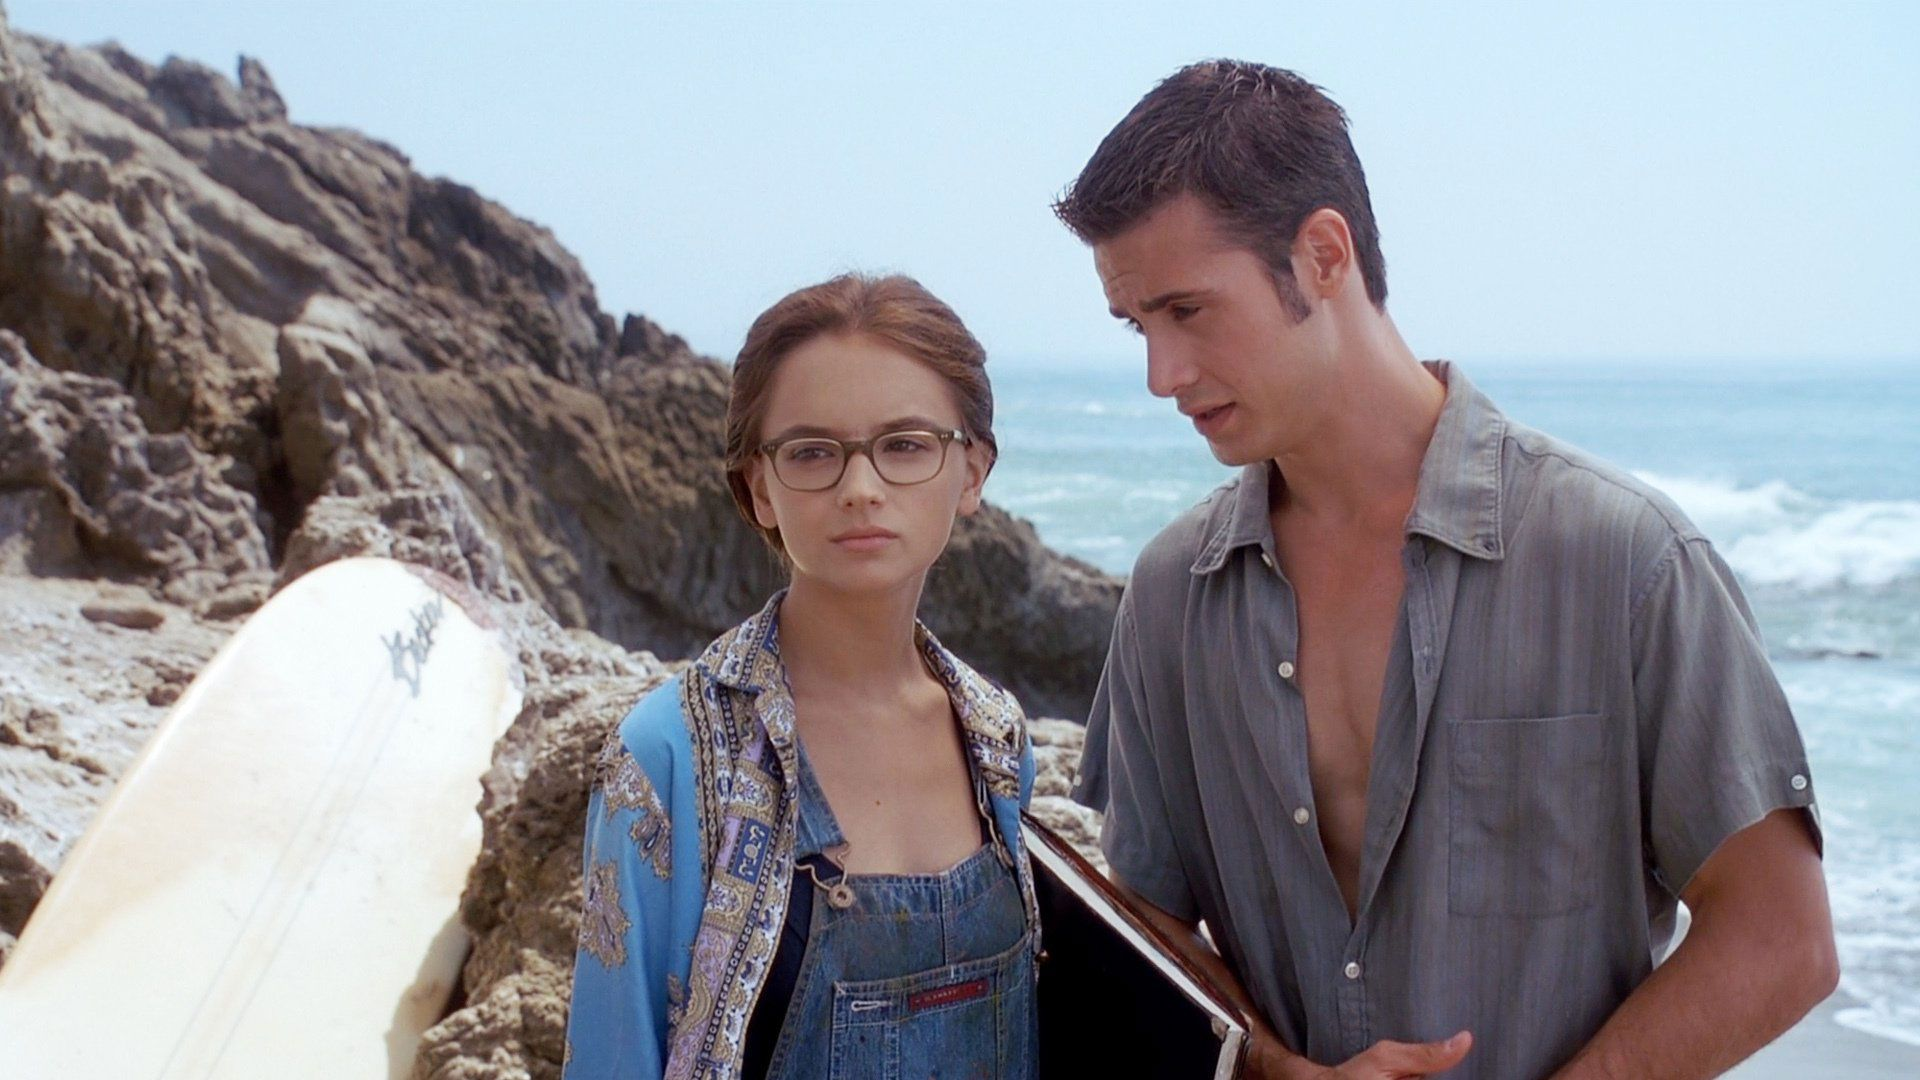 She's All That beach scene